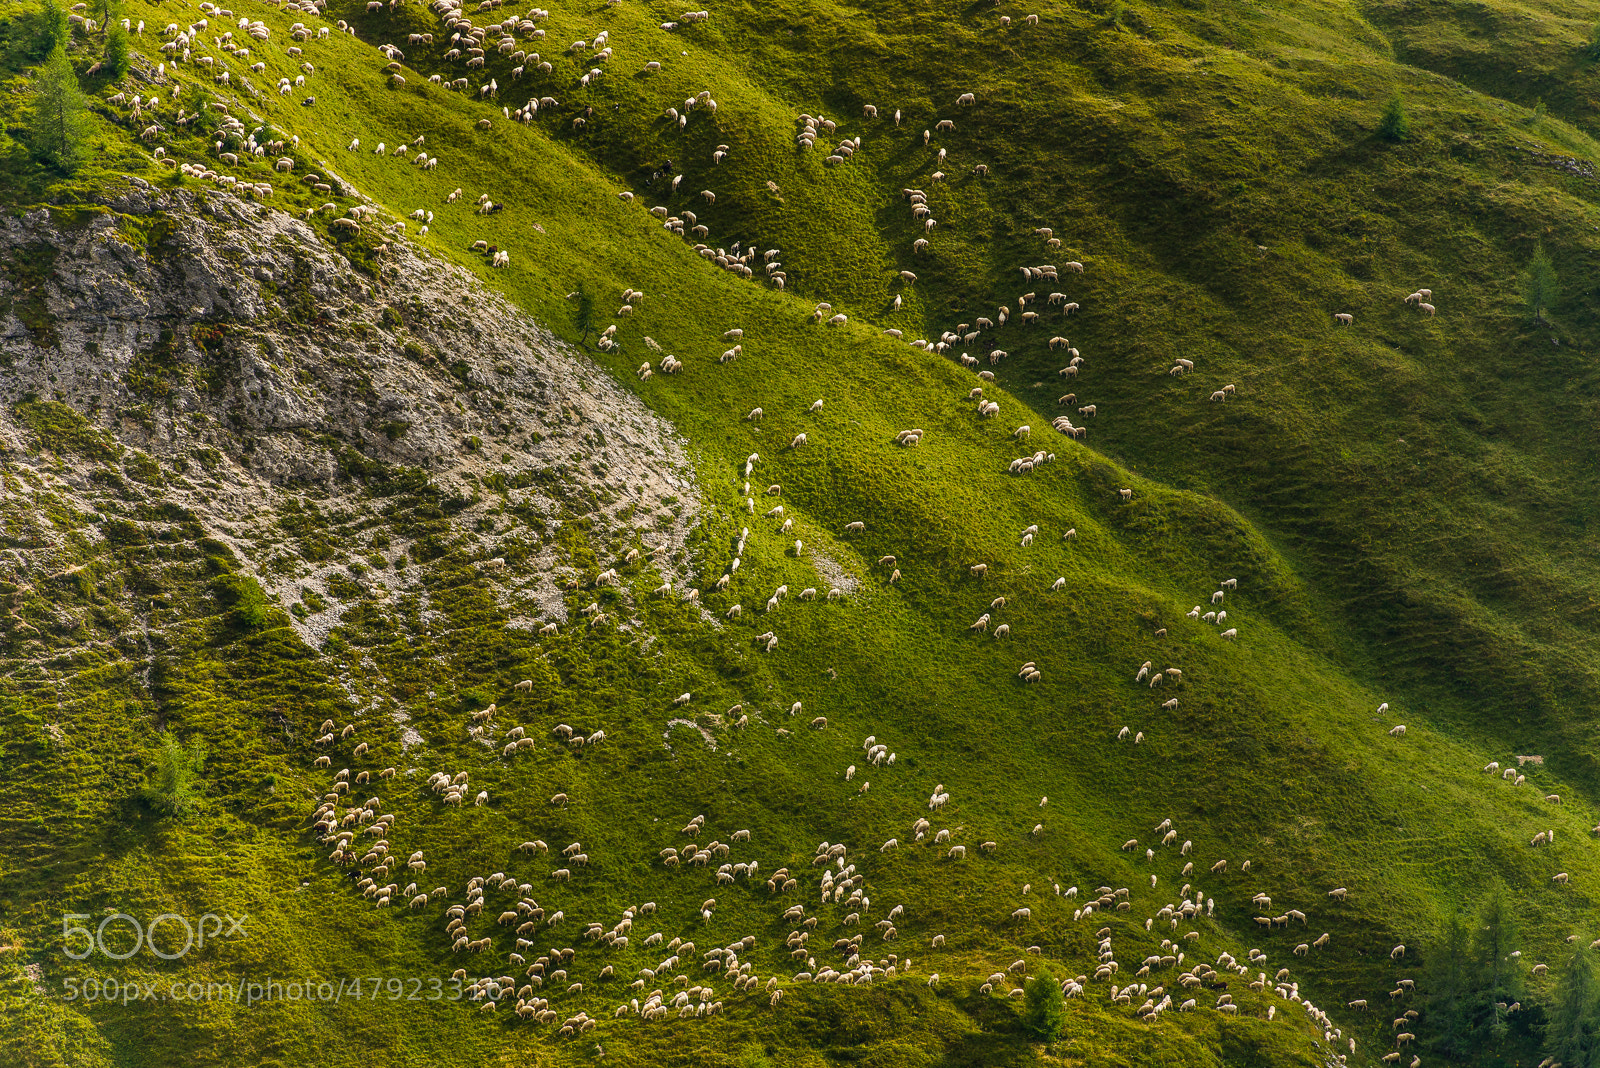 Photograph Counting Sheep :) by Hans Kruse on 500px